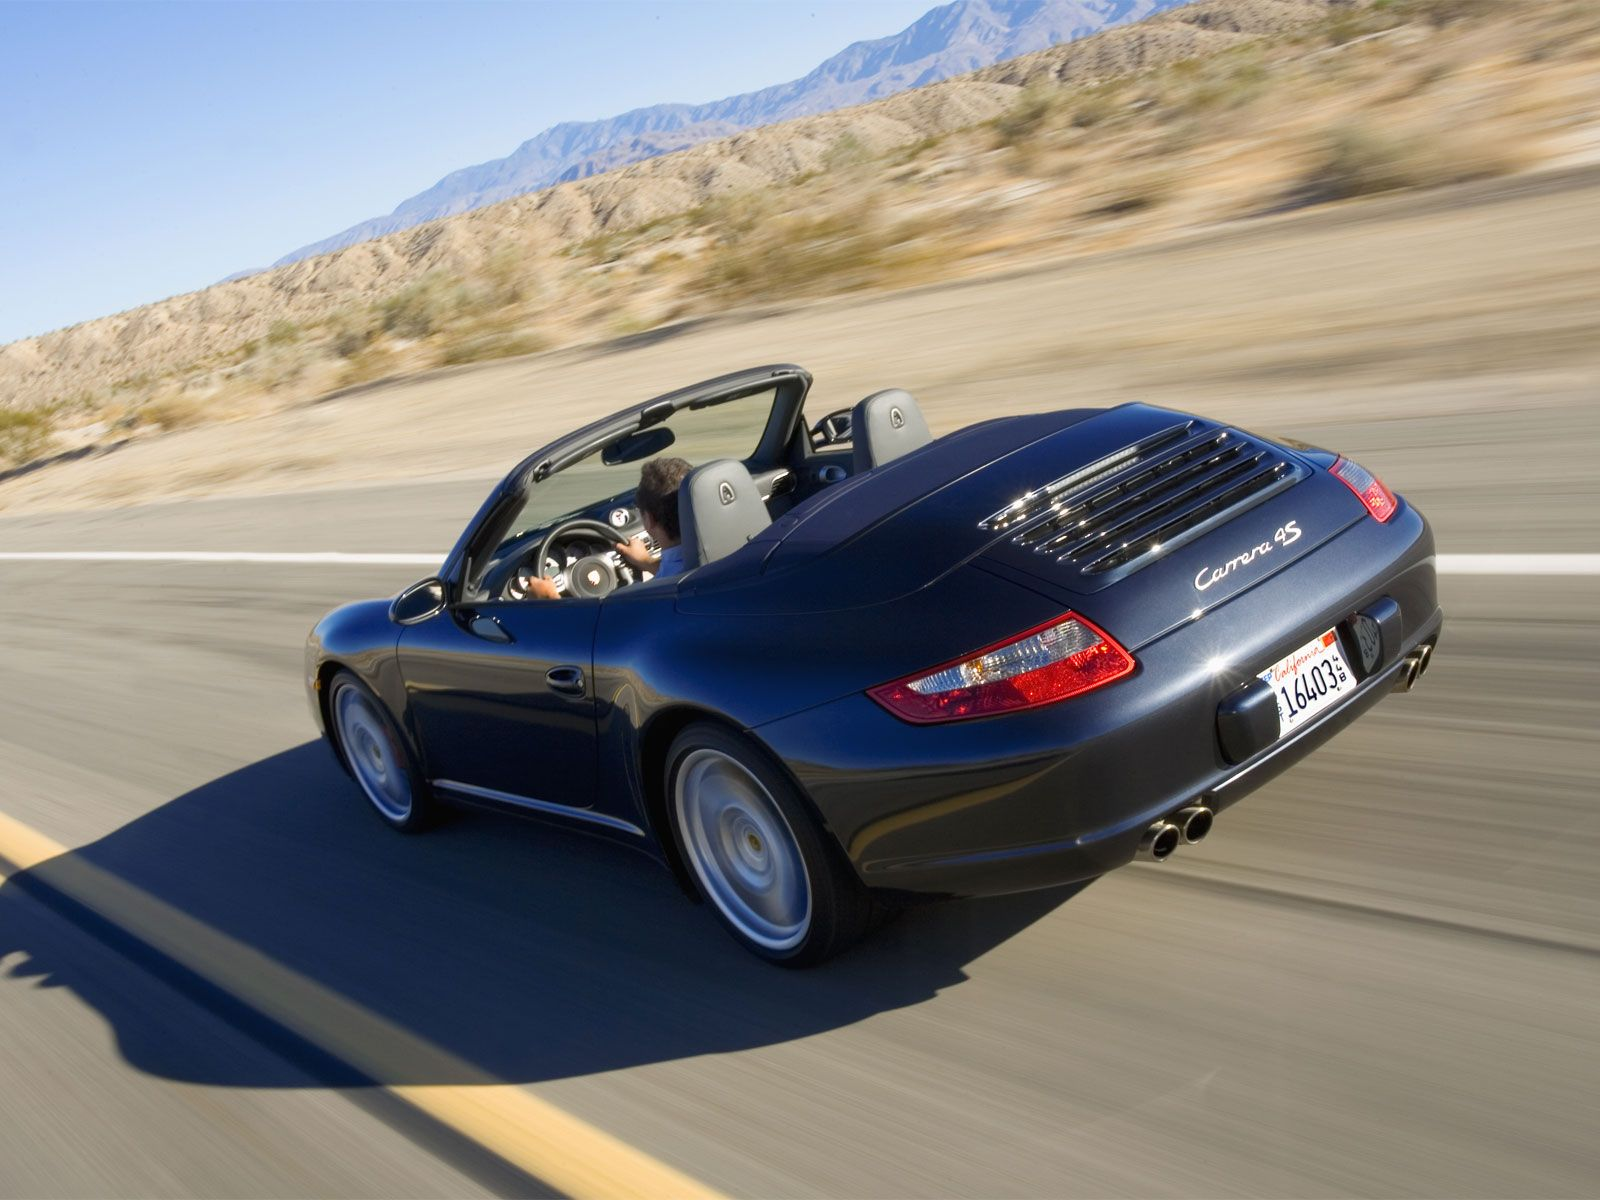 Porsche 911 carrera 4s cabriolet check out these porsches http